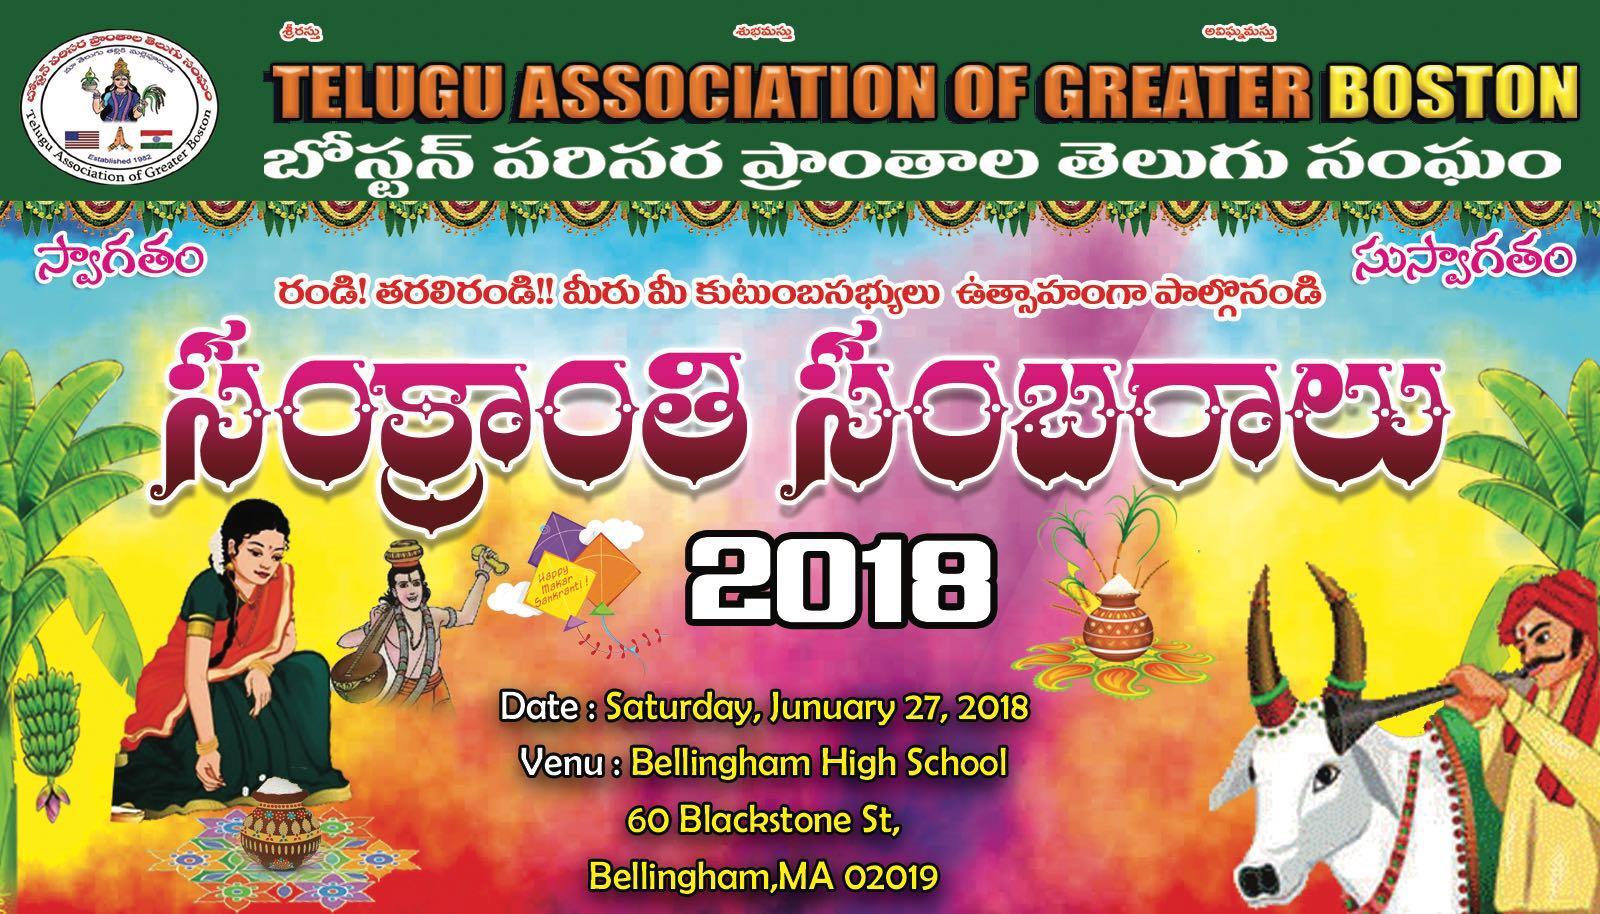 http://tagb.org/pictures/events/TAGB-Sankranthi-web-2018.jpeg